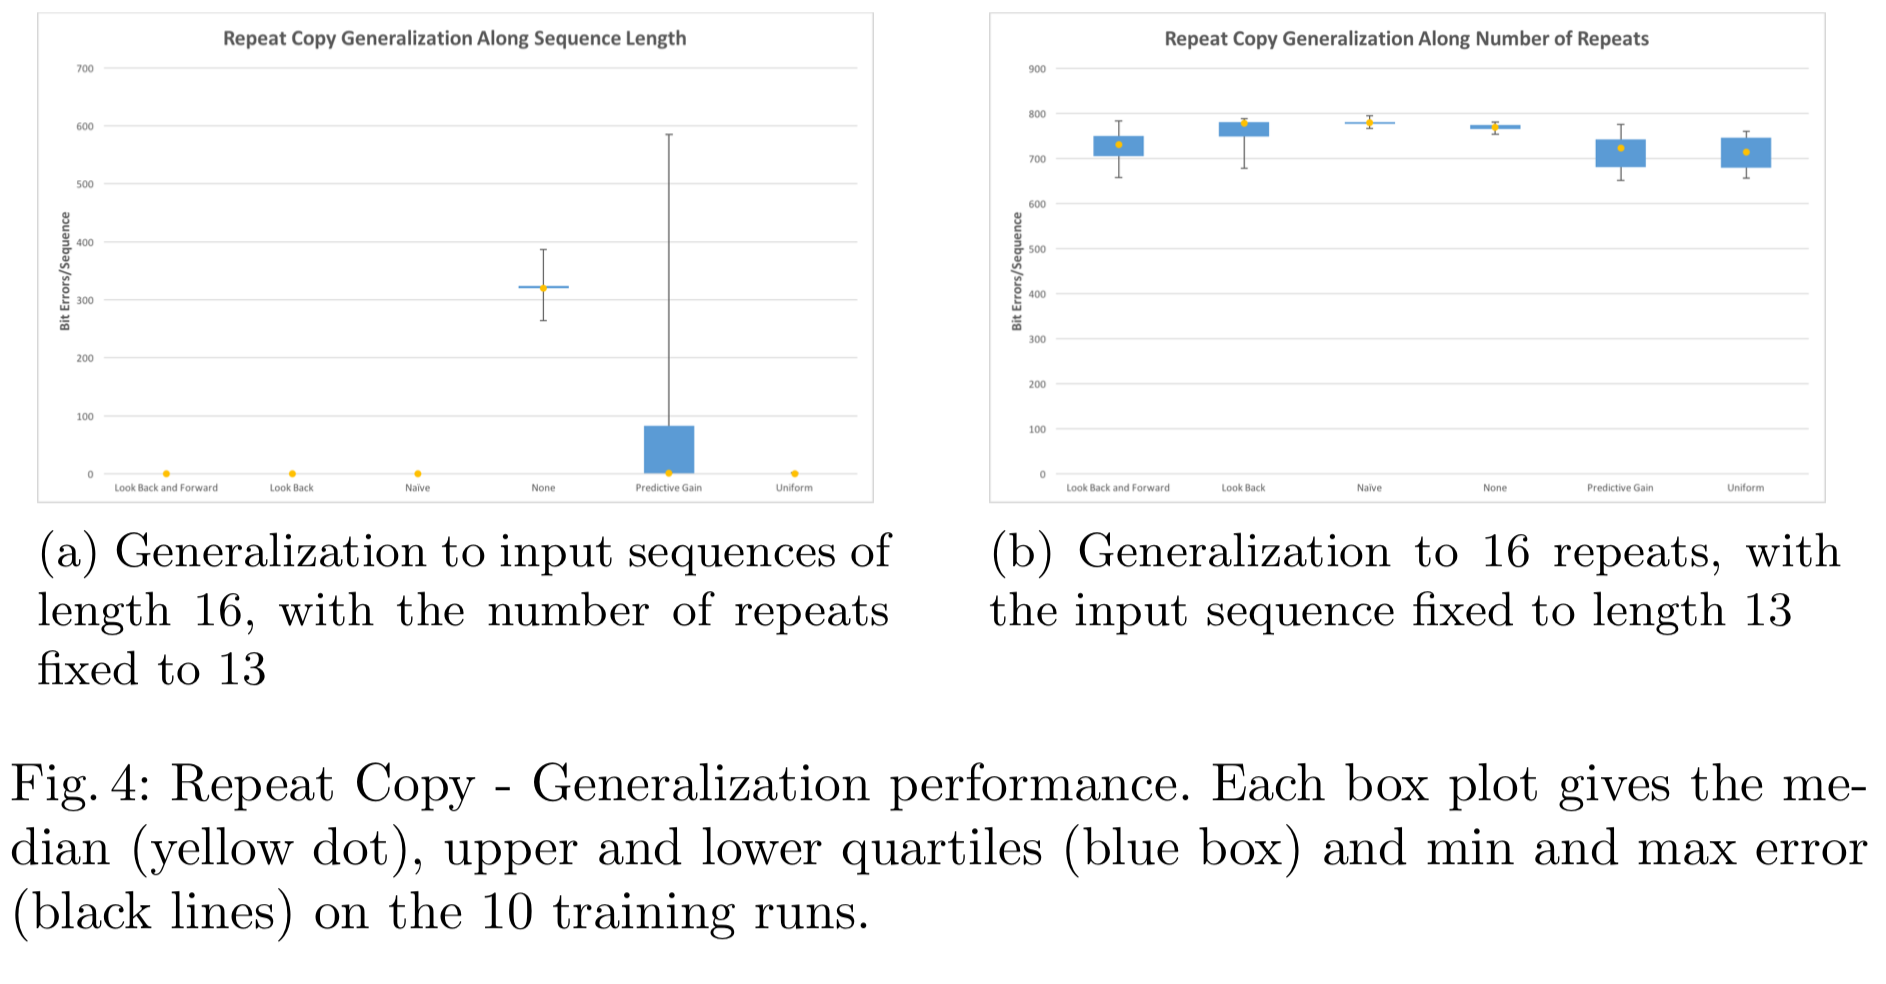 Fig. 4: Repeat Copy - Generalization performance. Each box plot gives the median (yellow dot), upper and lower quartiles (blue box) and min and max error (black lines) on the 10 training runs.